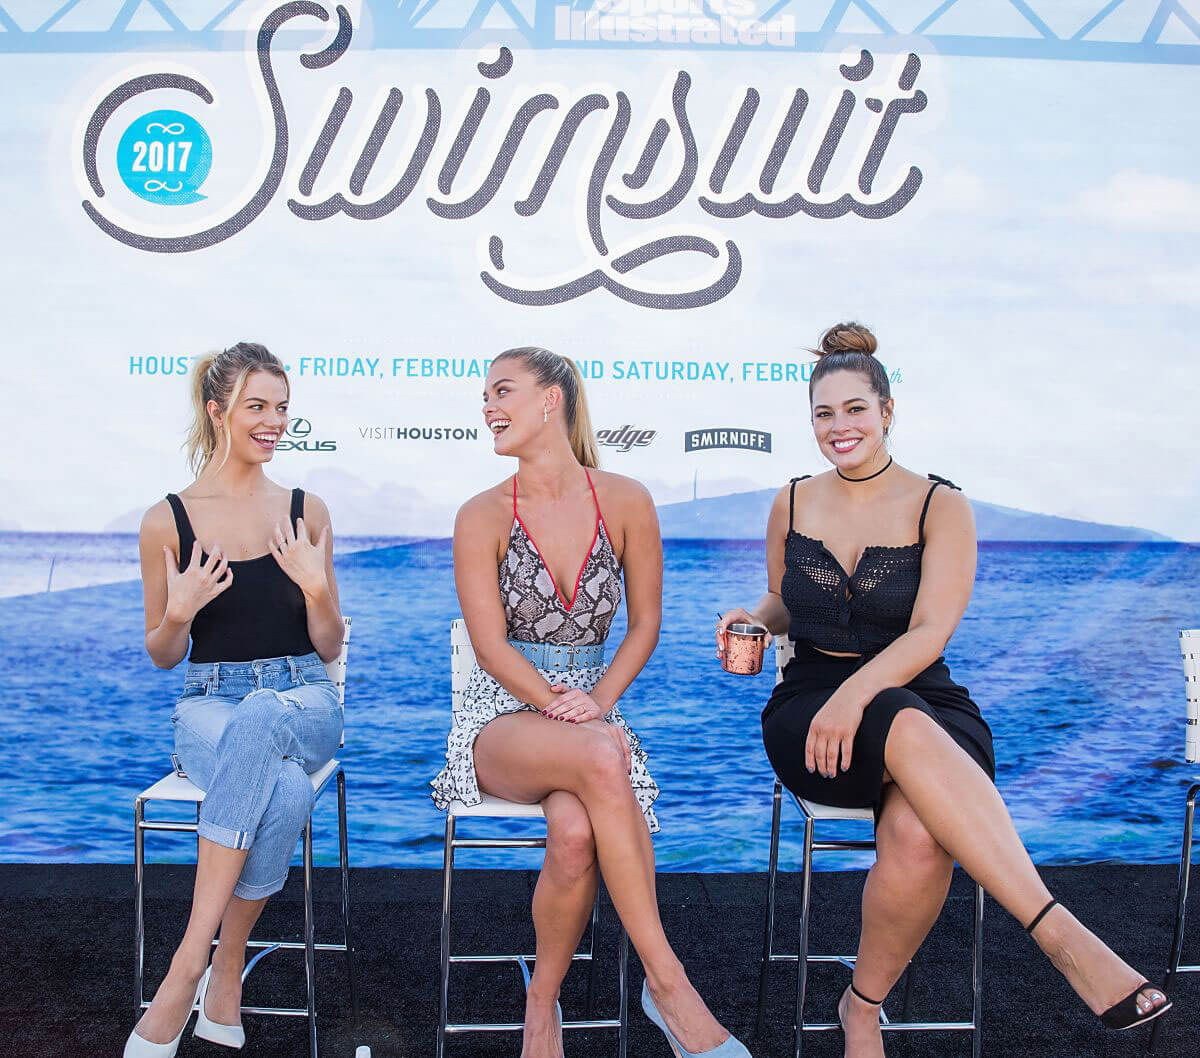 Nina Agdal Stills at VIBES by SI Swimsuit 2017 Launch Festival in Houston